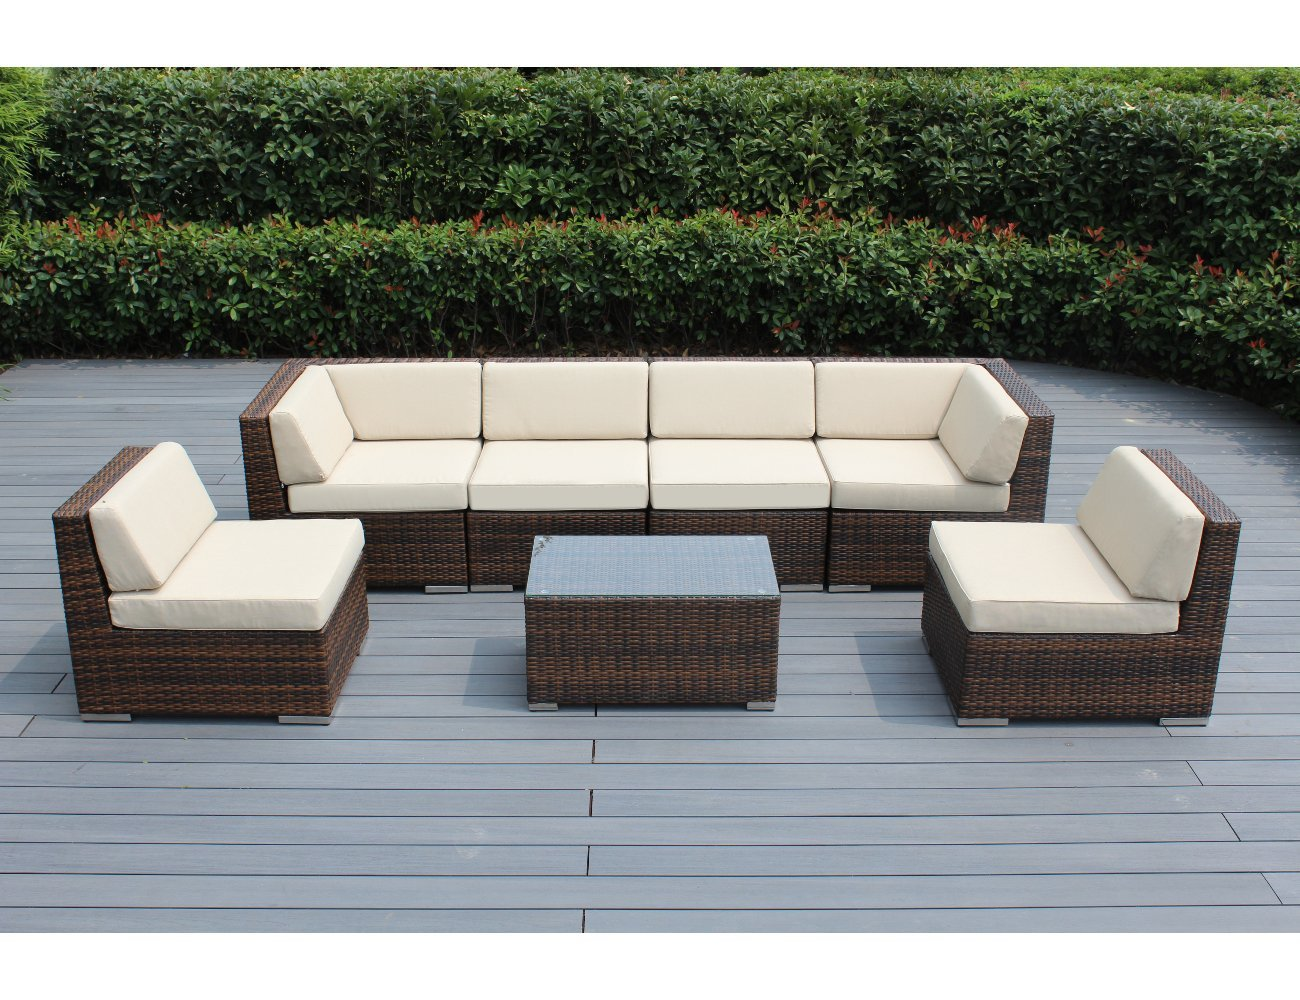 Ohana 7-Piece Outdoor Patio Furniture Sectional Conversation Set, Mixed Brown Wicker with Beige Cushions – No Assembly with Free Patio Cover